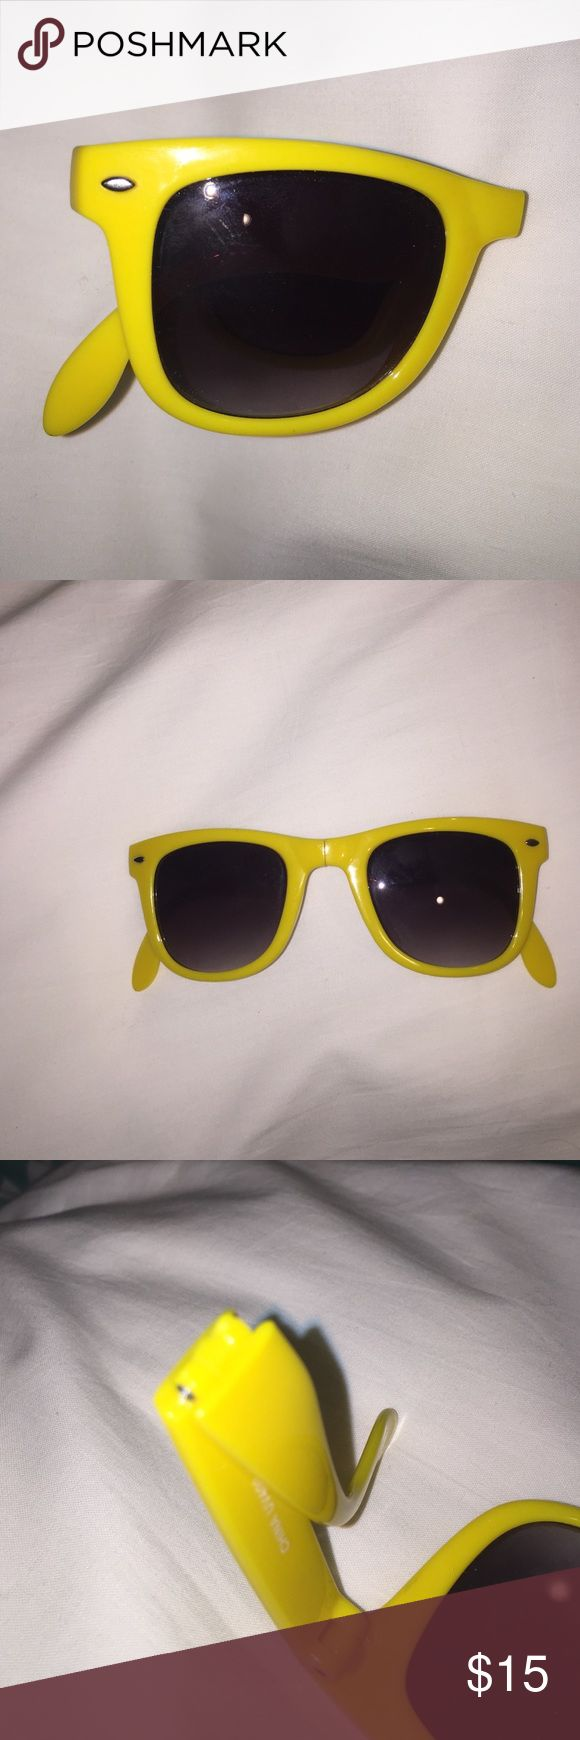 Folding wayfarer yellow sunglasses Yellow wayfarers that fold up for easy storage. One of a kind!! Accessories Sunglasses